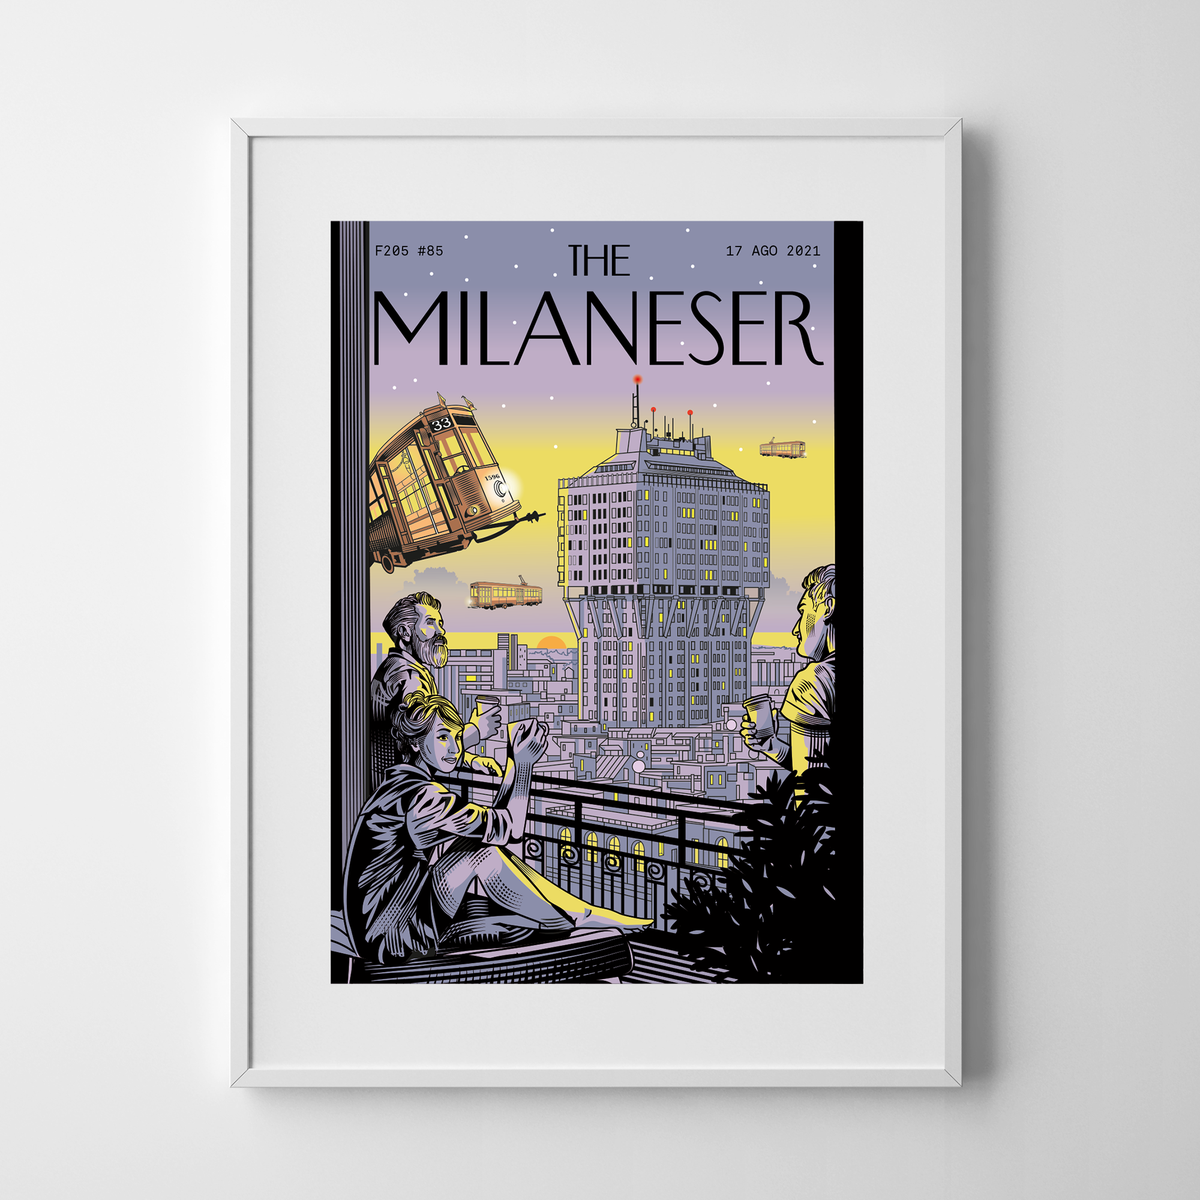 Image of The Milaneser #85